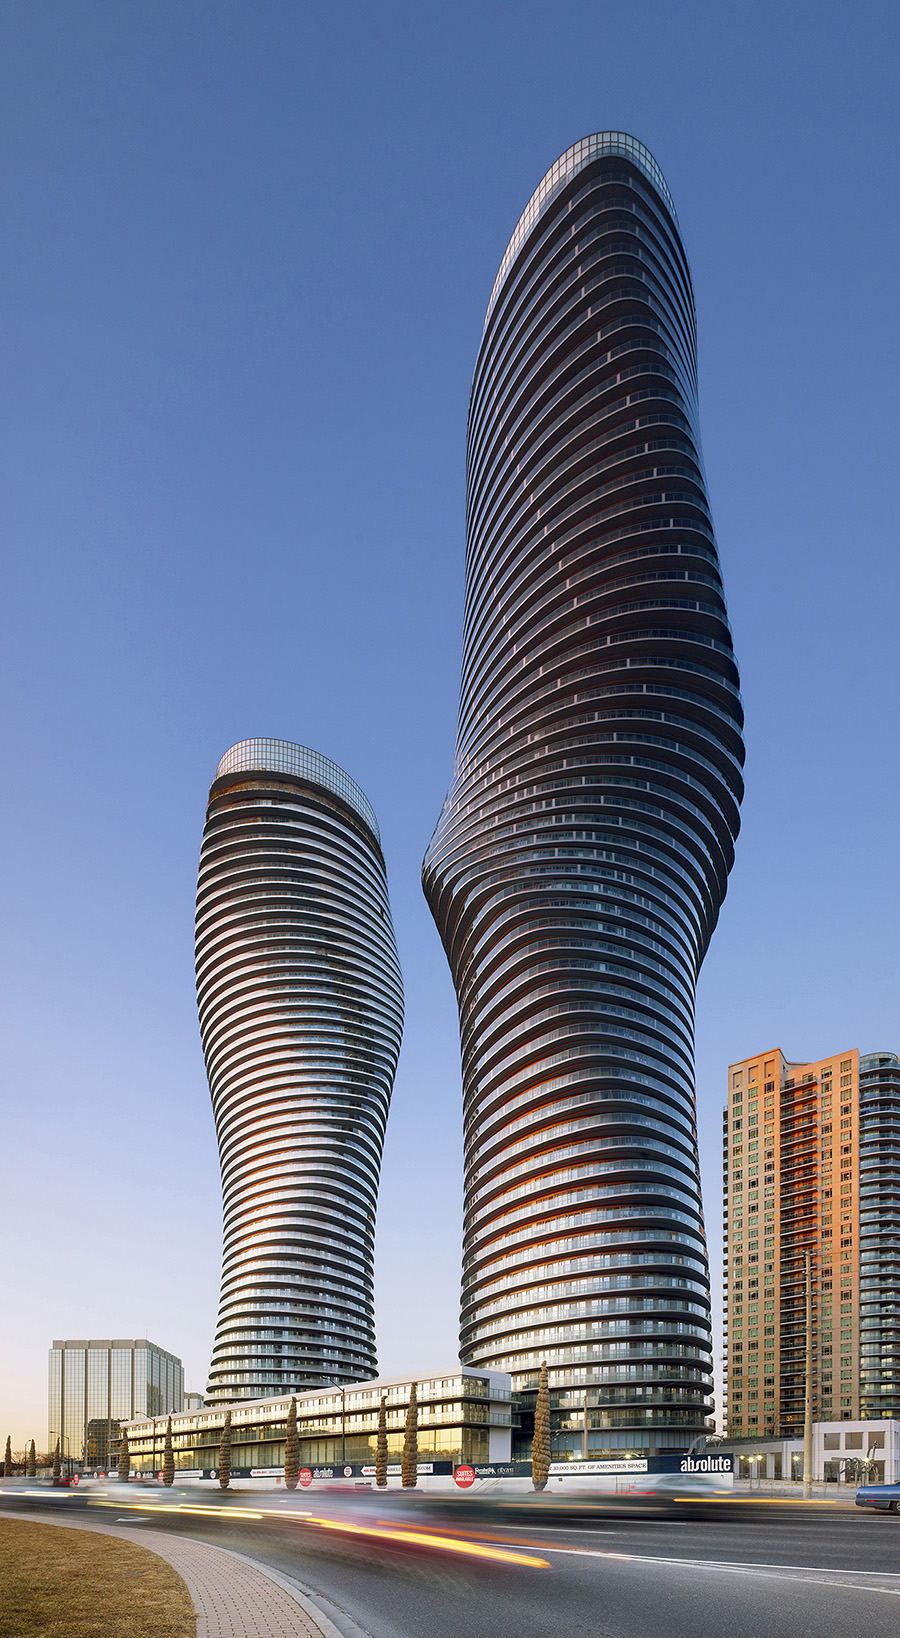 Absolute Towers designed by MAD Architects